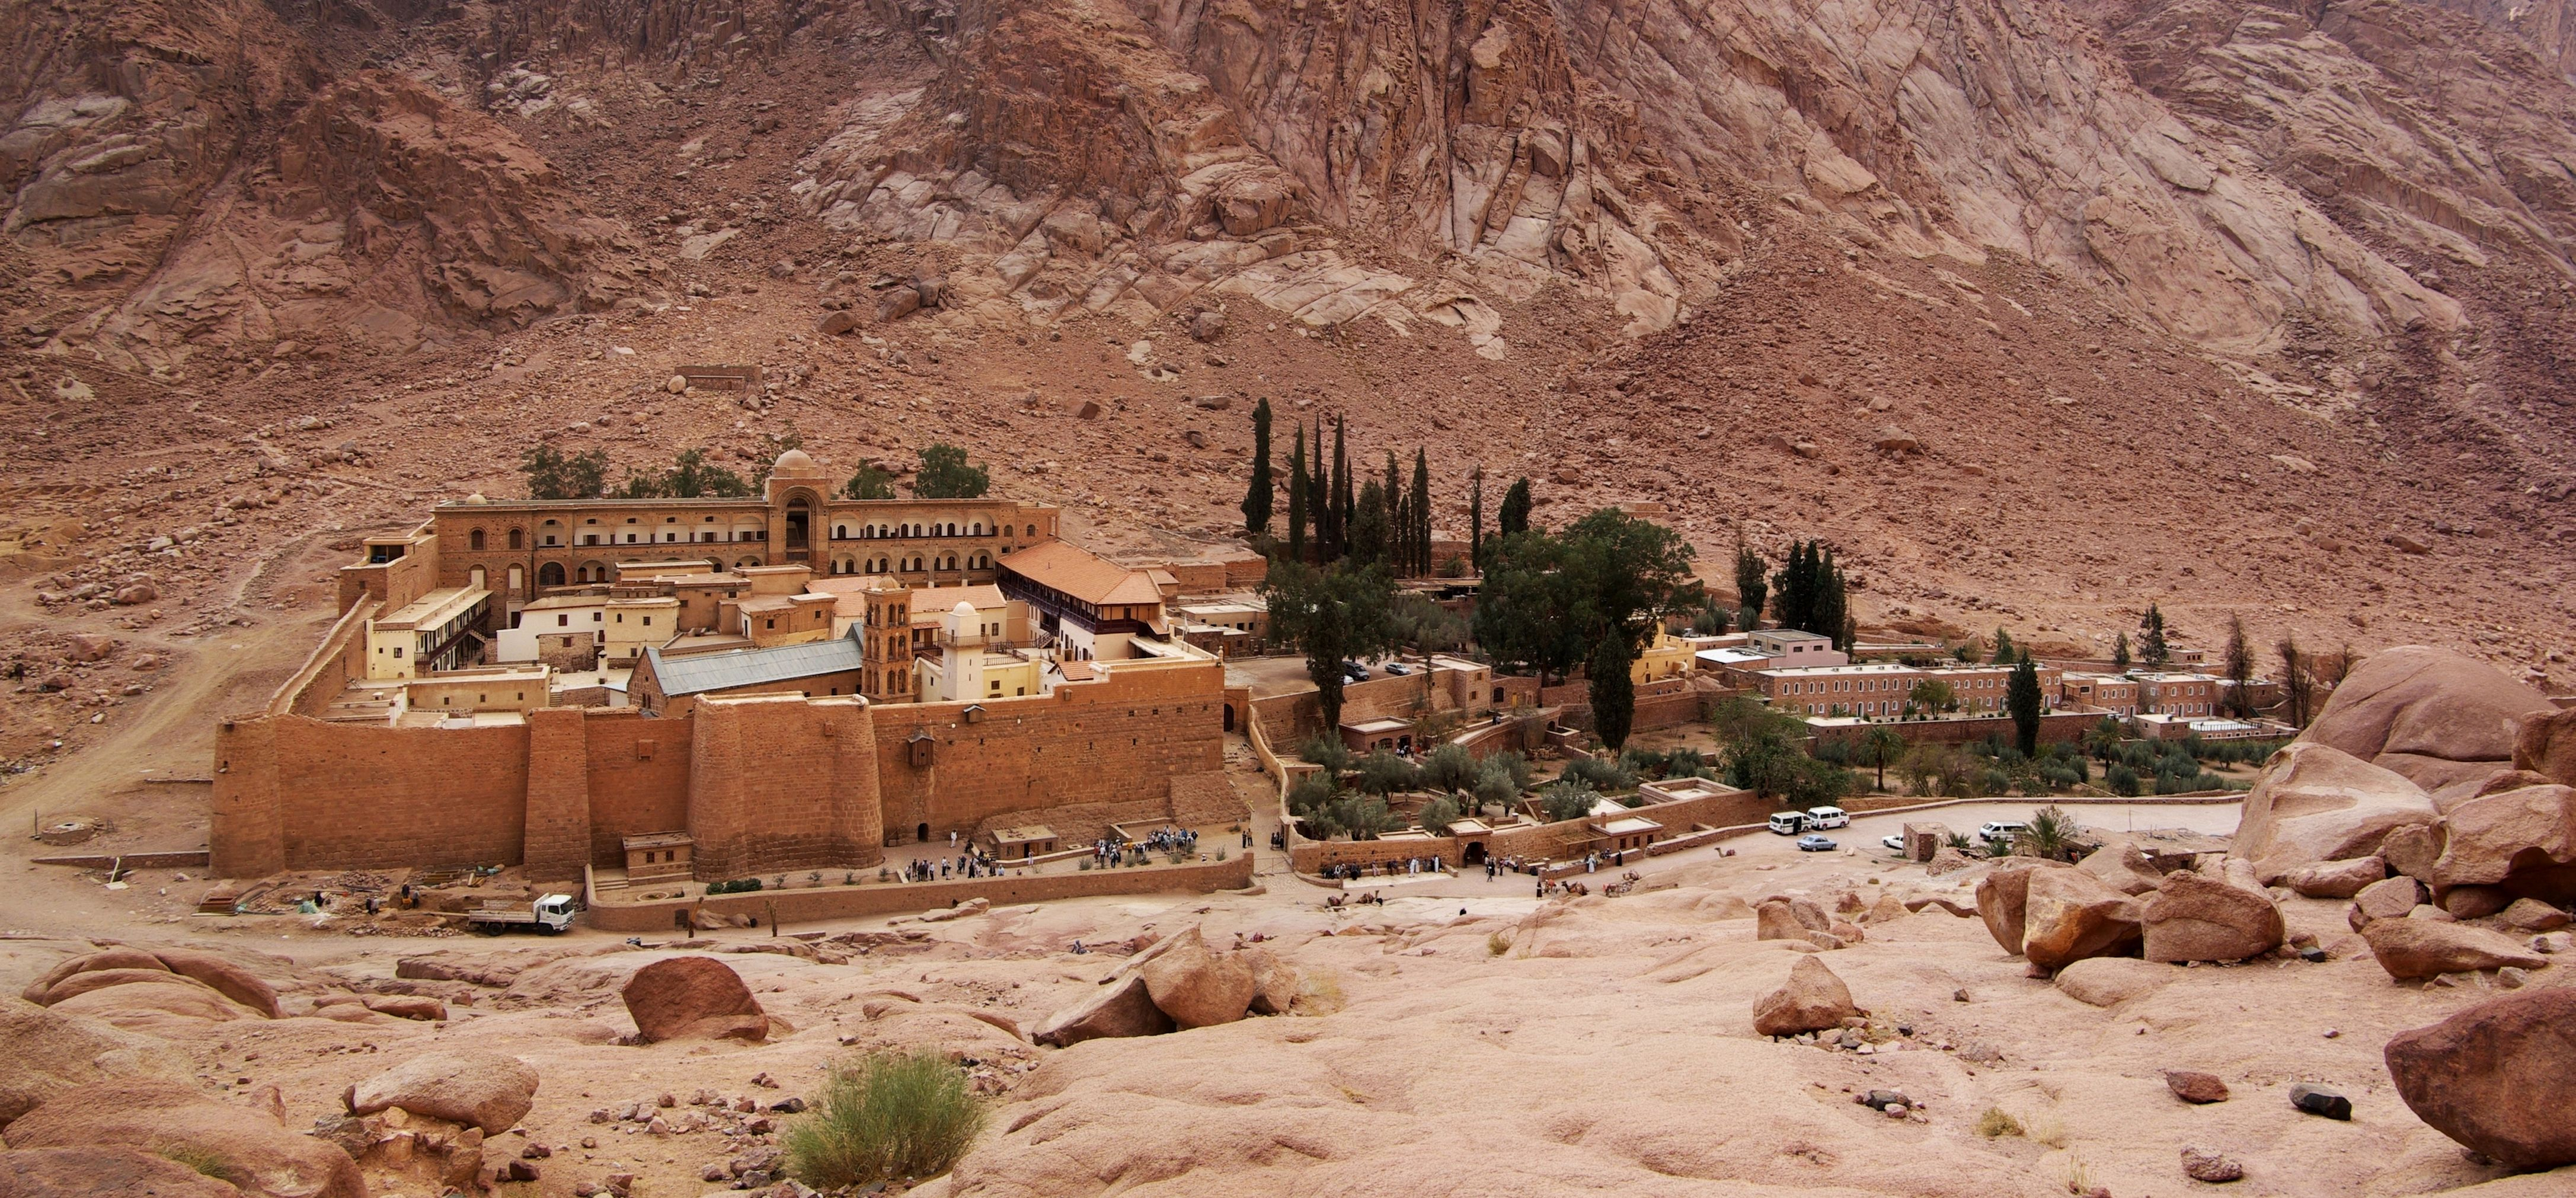 sacred_monastery_of_the_god-trodden_mount_sinai_191.jpg